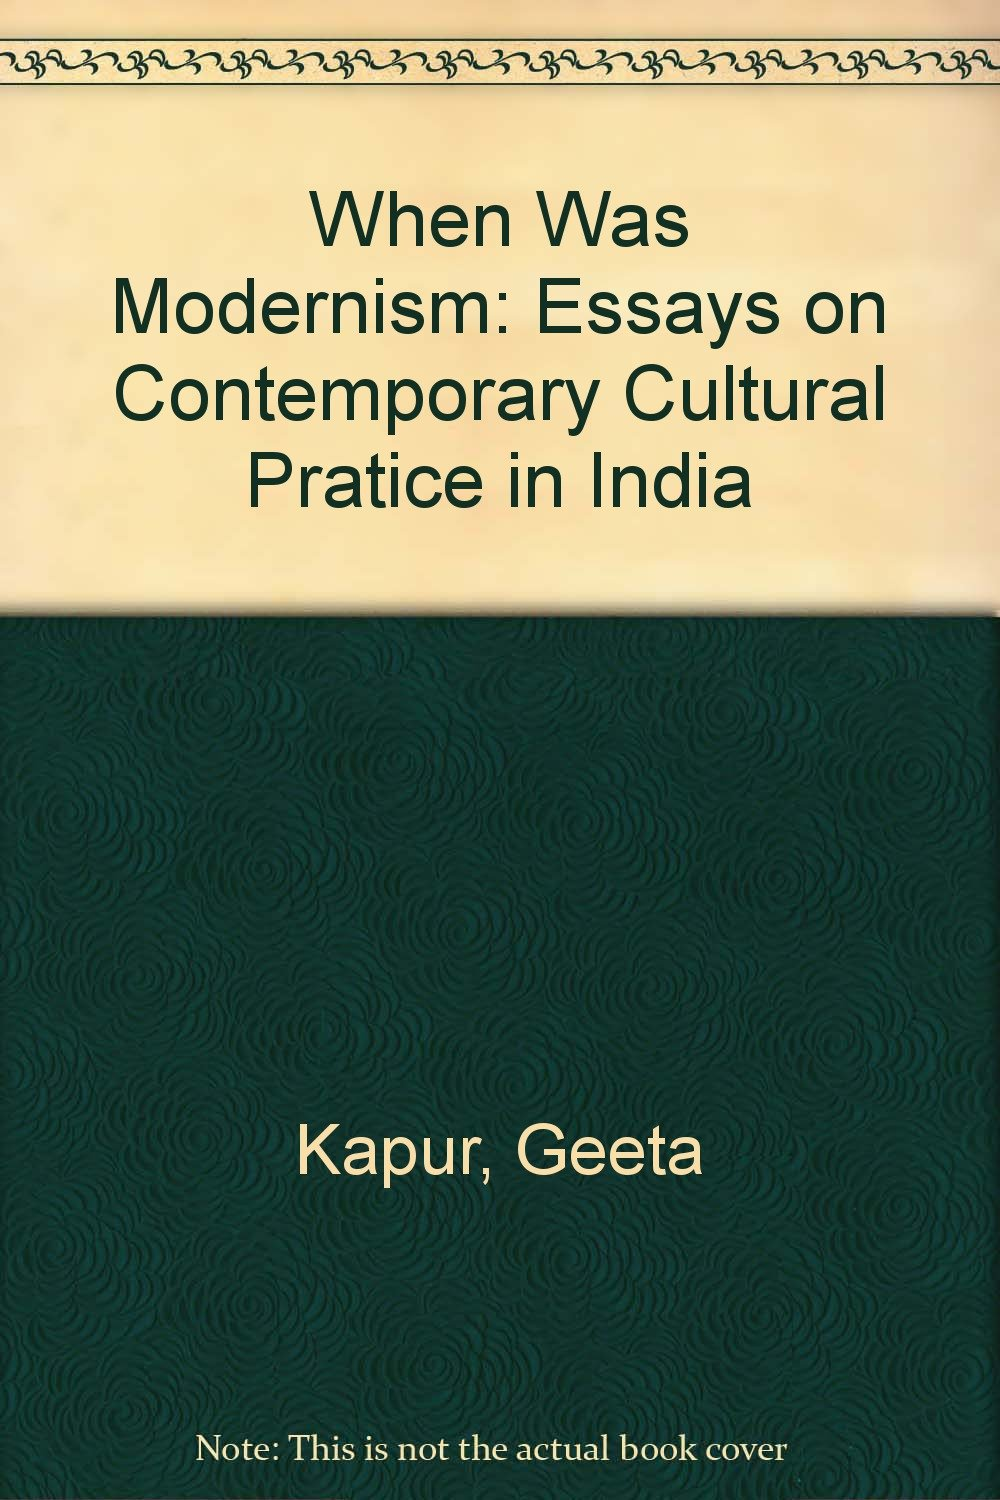 when was modernism essays on contemporary cultural practice in when was modernism essays on contemporary cultural practice in geeta kapur 9788185229140 com books